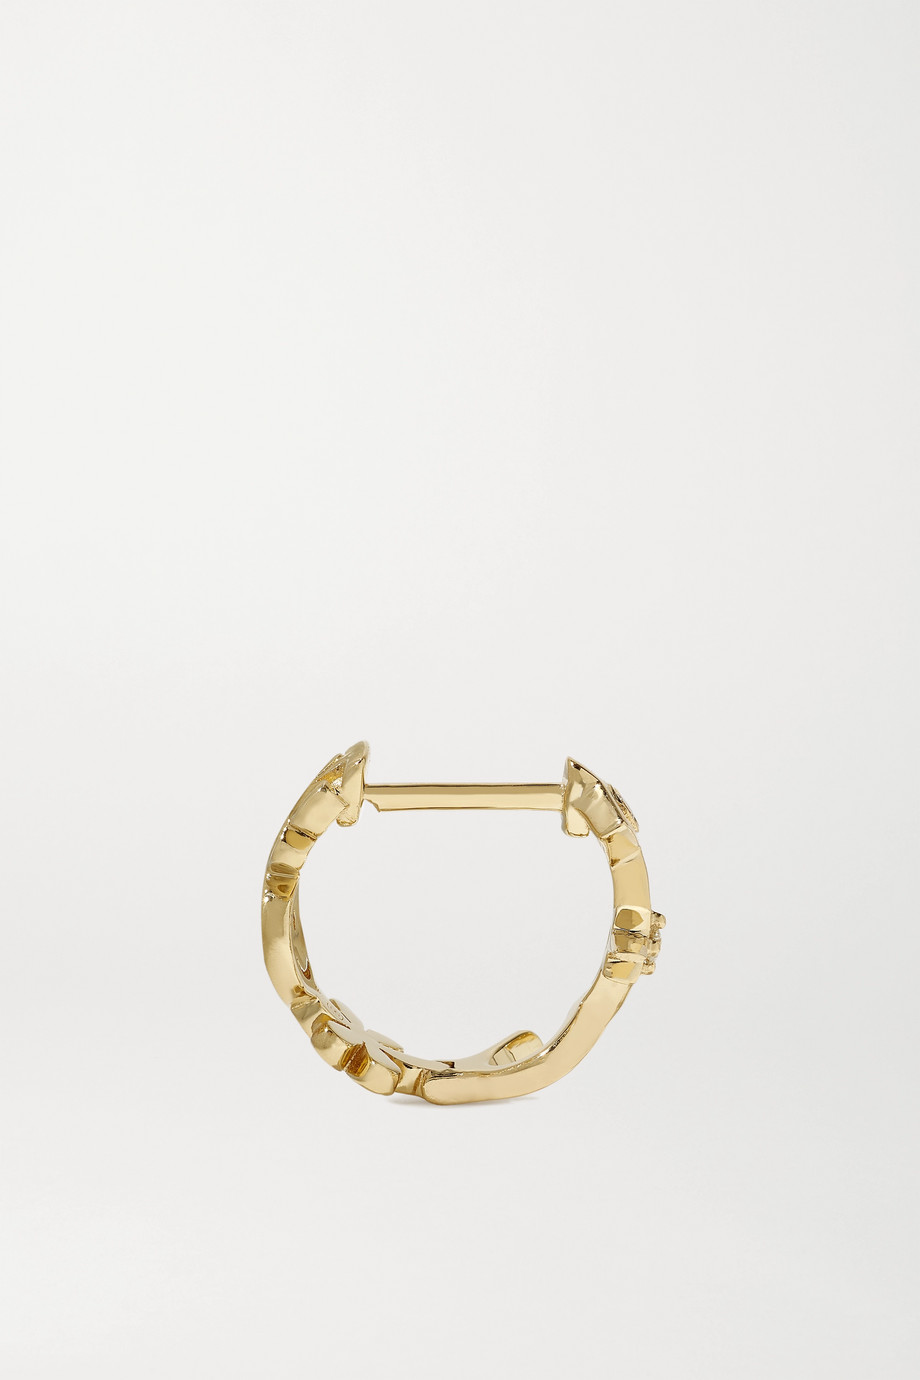 Sydney Evan Icon Huggie 14-karat gold diamond hoop earrings